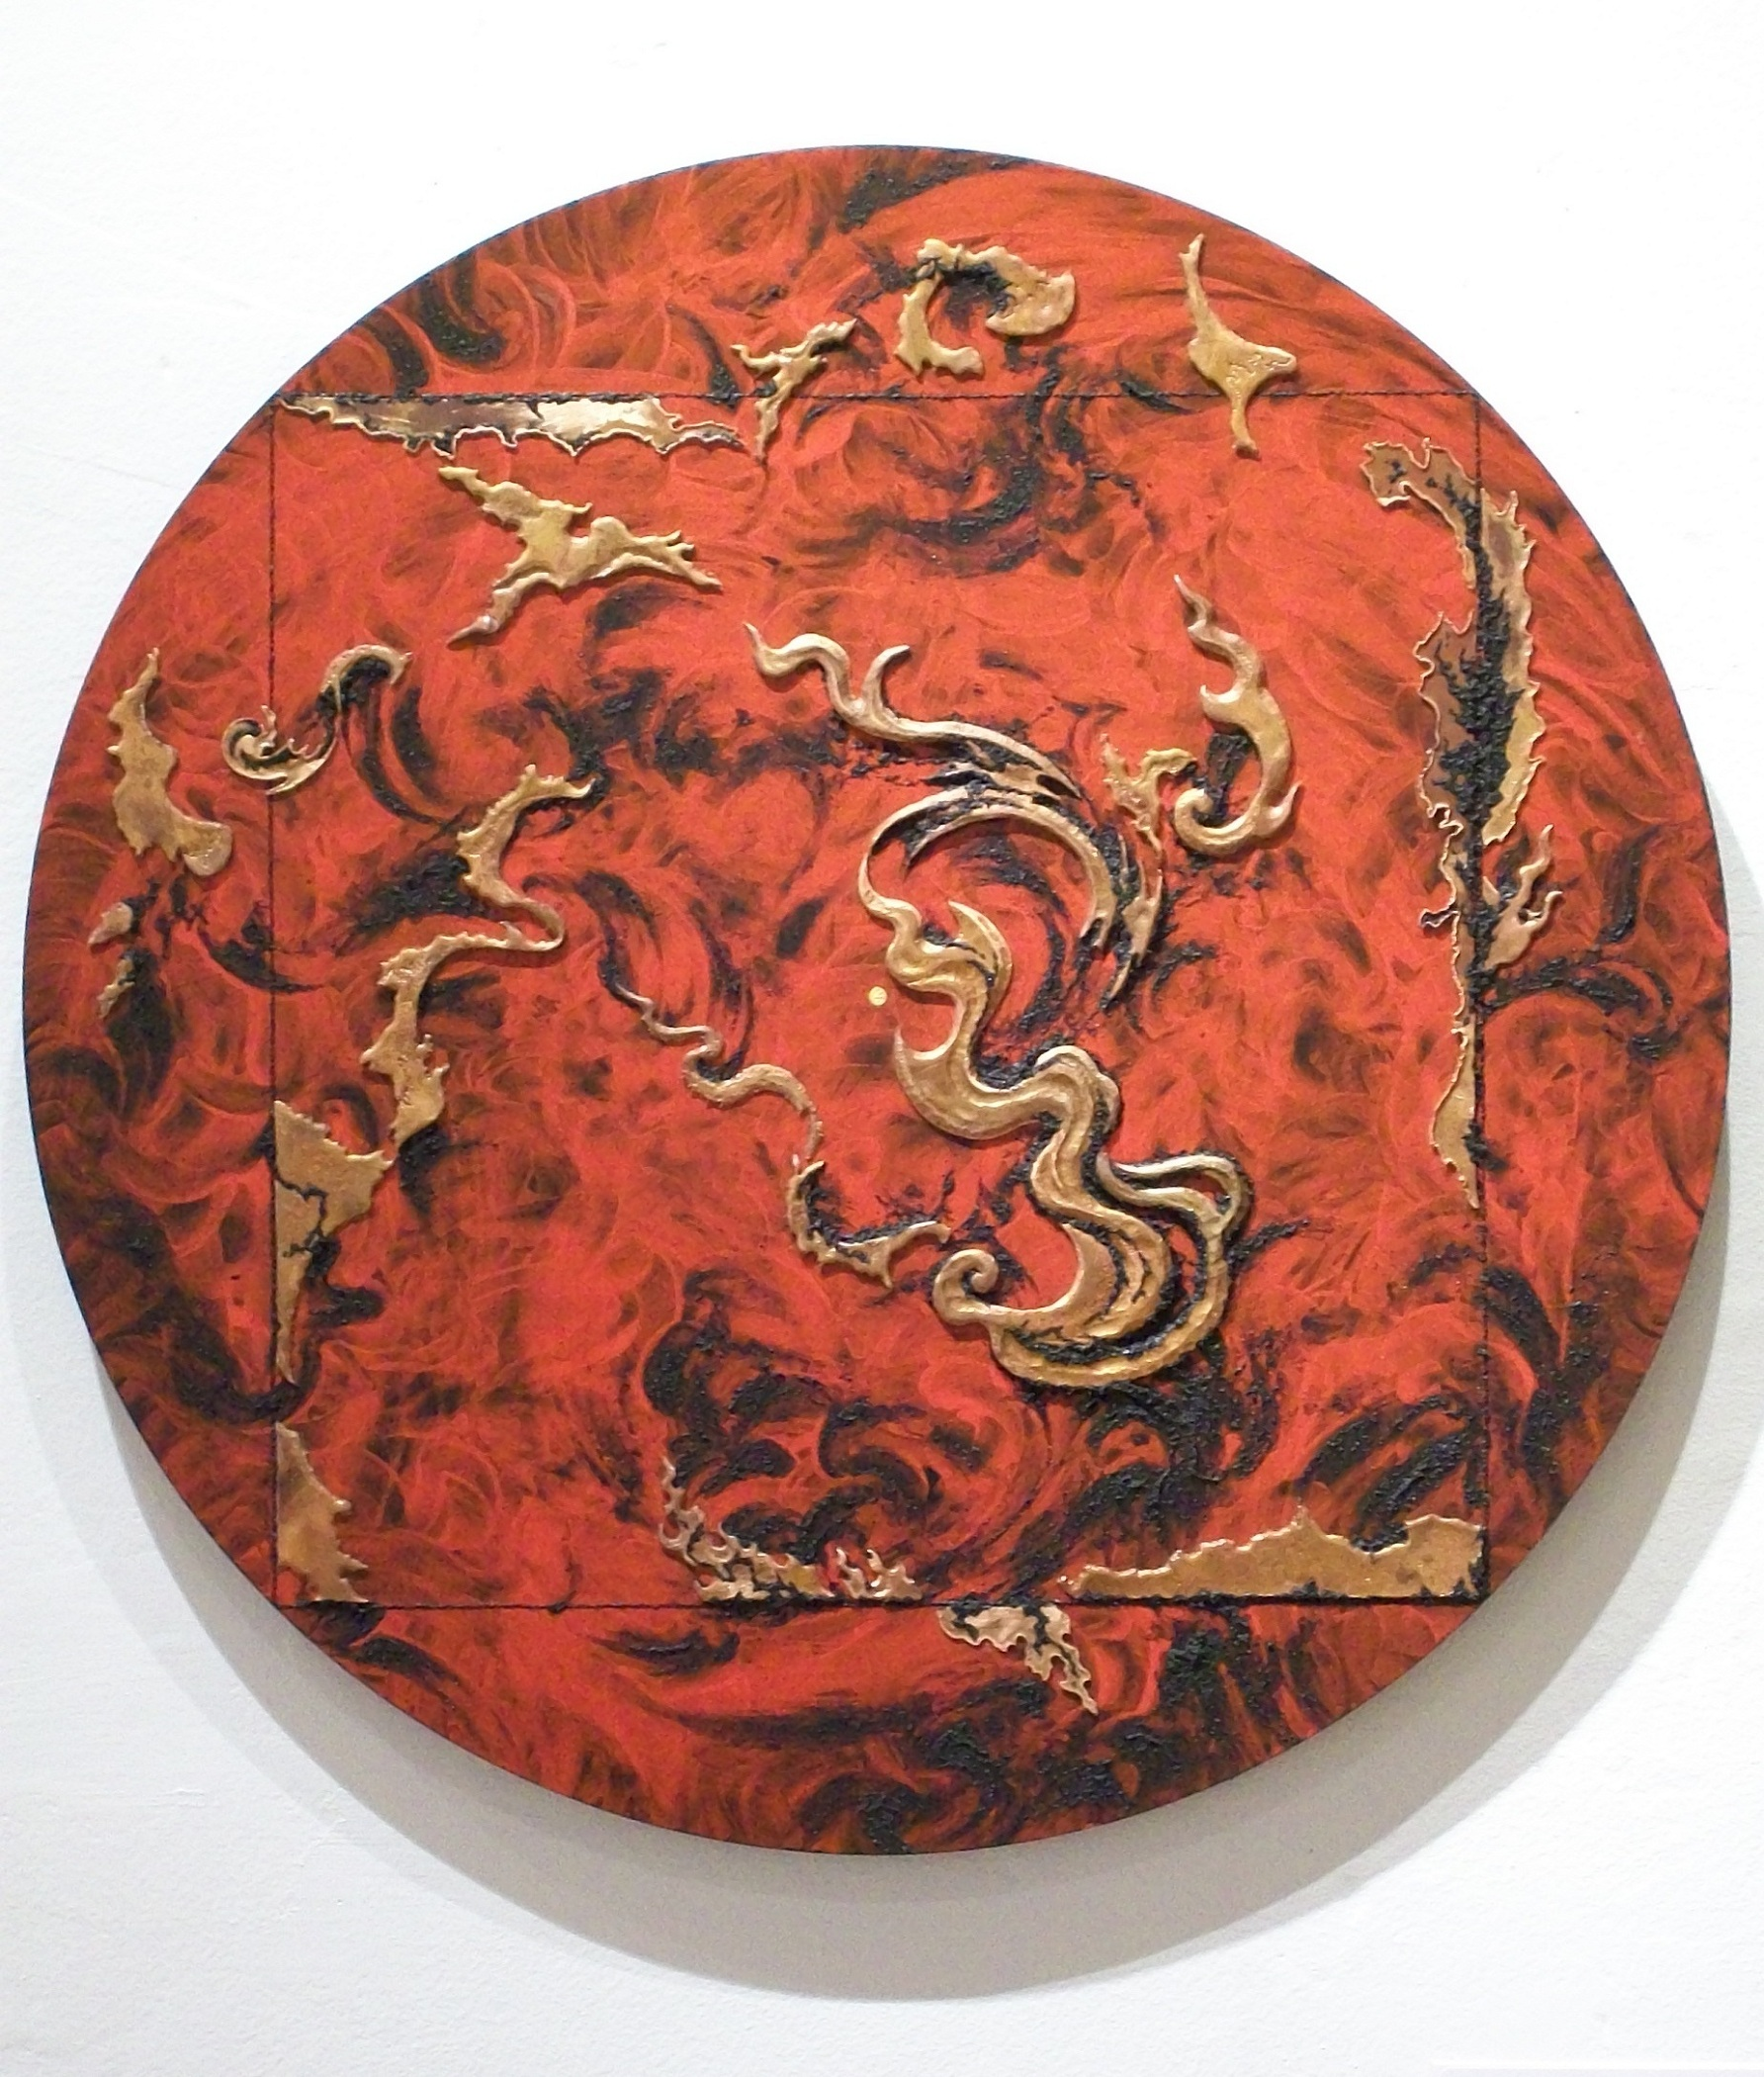 BURNING WORLD 1 , 2010, copper repoussé elements, mineral particles and threads, acrylic on archival wood panel, 20 diameter x .75 inches.  Collection of Berthe and John G. Ford.